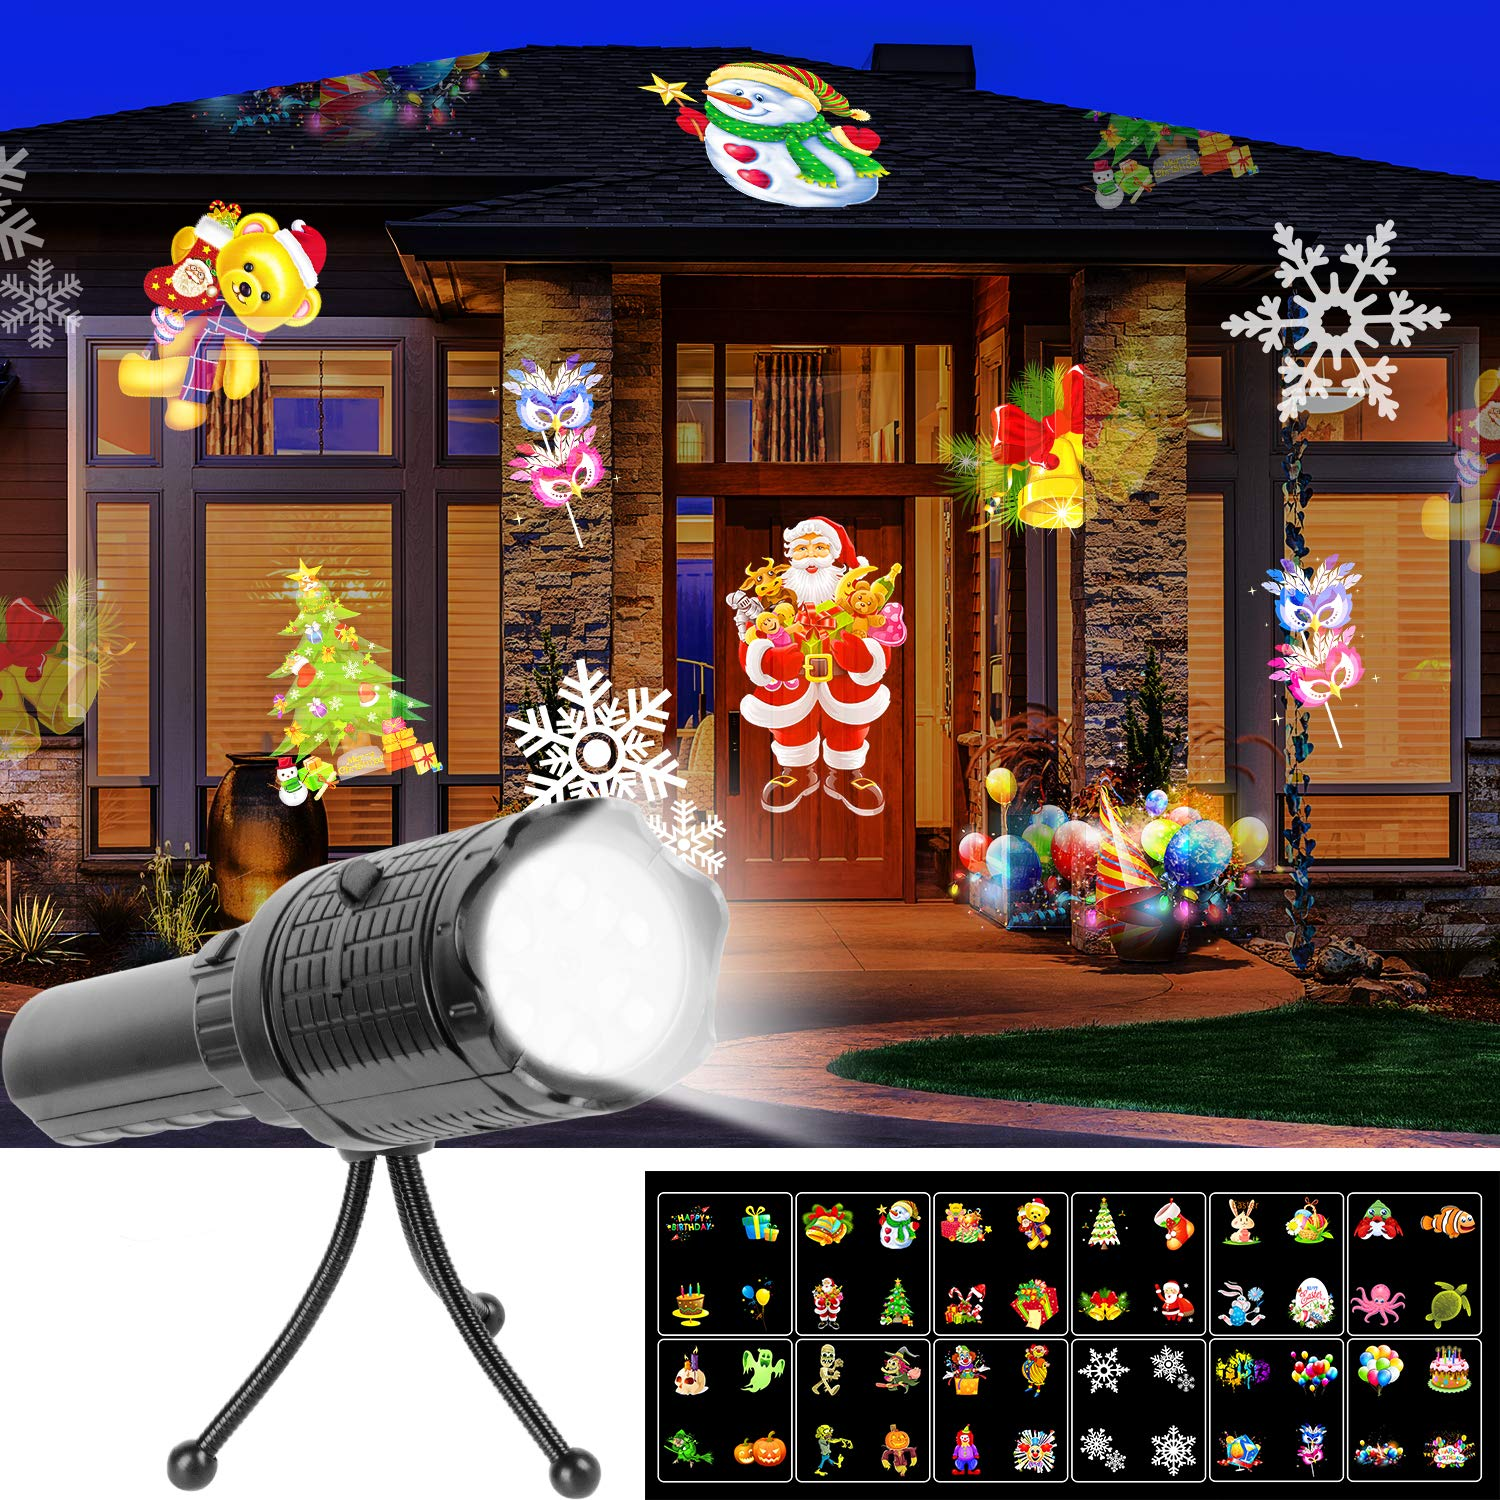 UNIFUN LED Projector Flashlight Battery Operated Christmas Portable Projector Light 12 Pattern Slides Tripod Halloween Easter Birthday Party Holiday Decoration Xmas